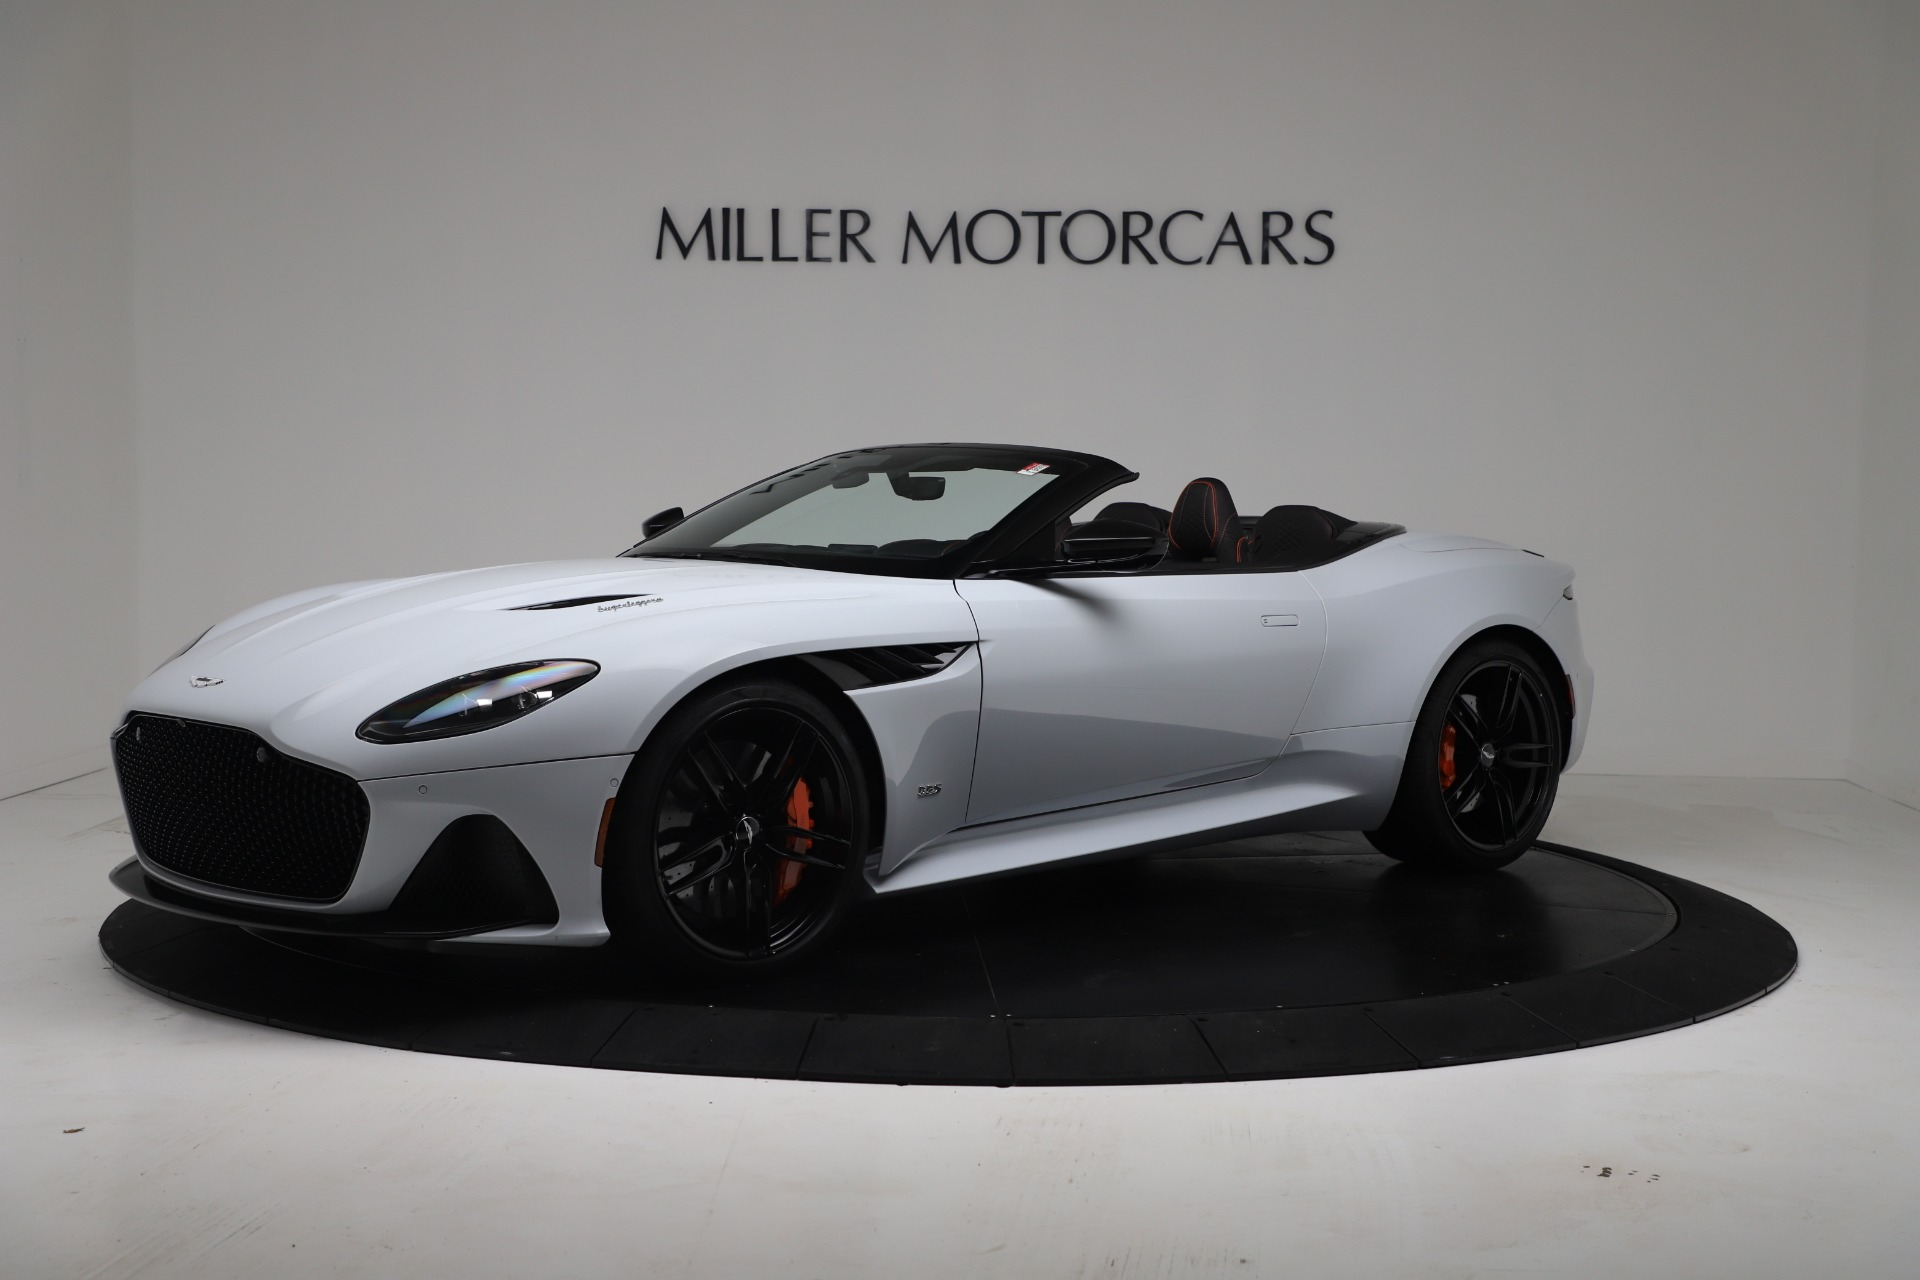 New 2020 Aston Martin DBS Superleggera Volante Convertible for sale Sold at Bentley Greenwich in Greenwich CT 06830 1